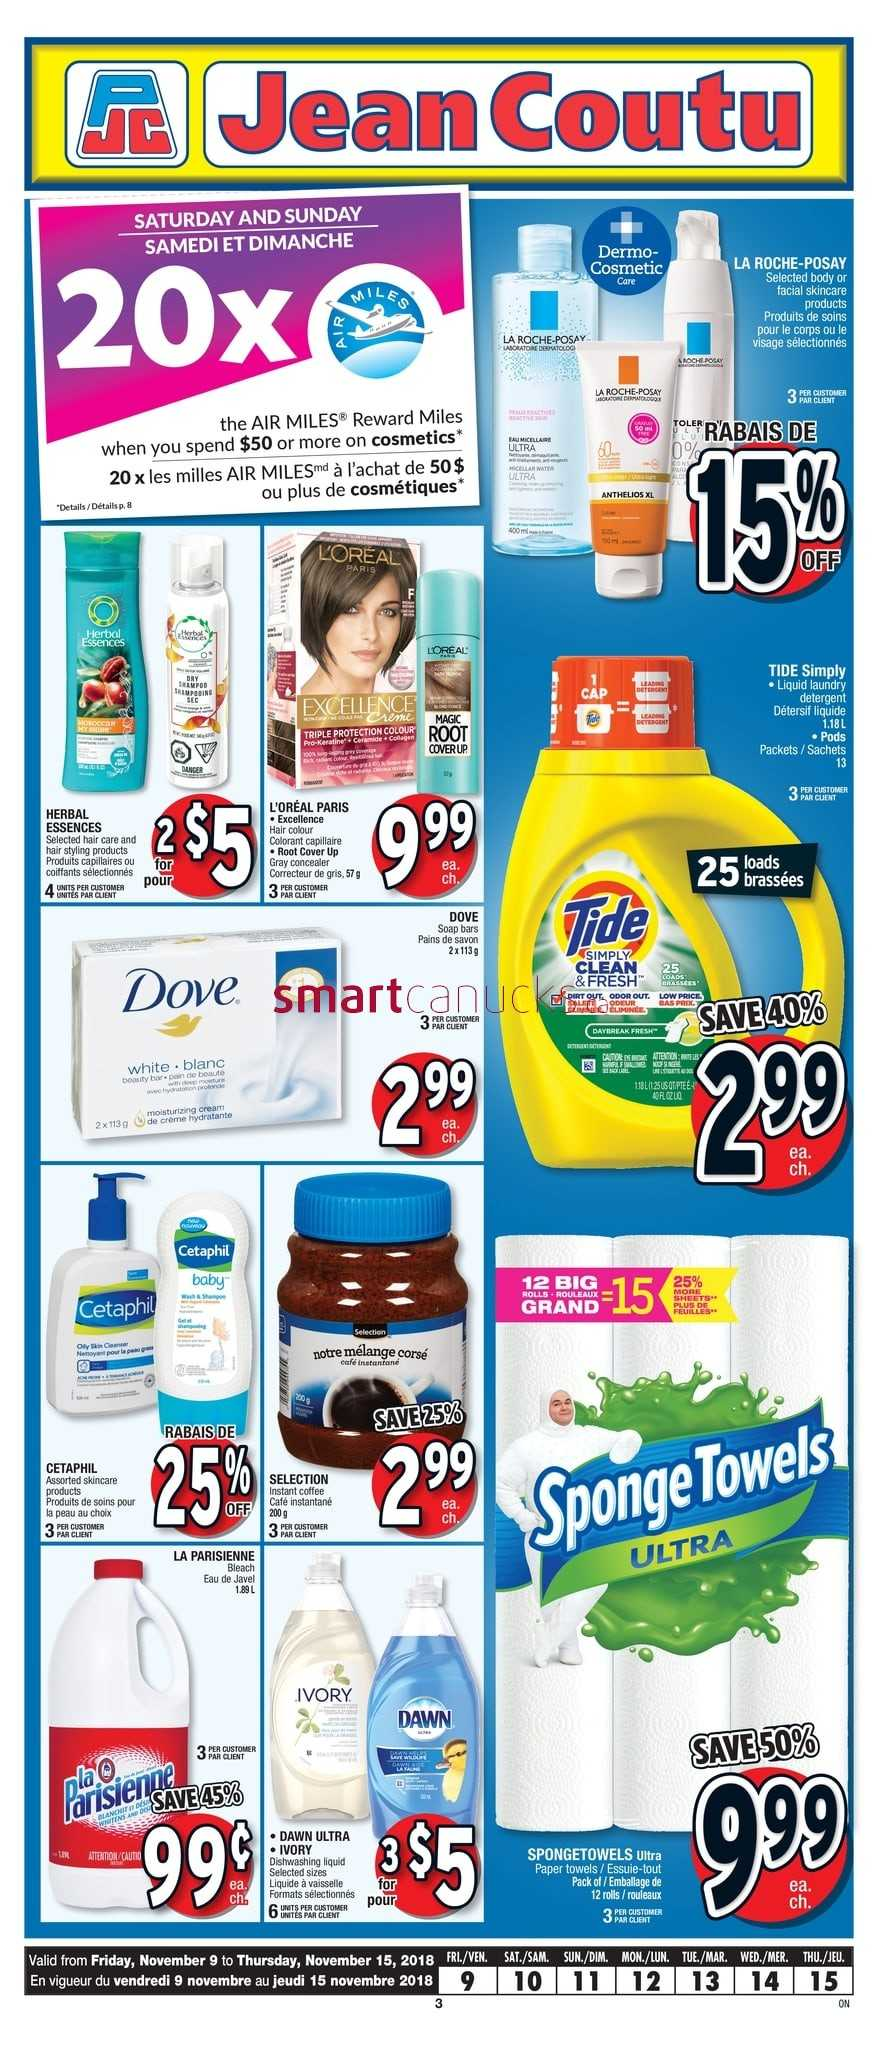 Jean Coutu On Flyer November 9 To 15